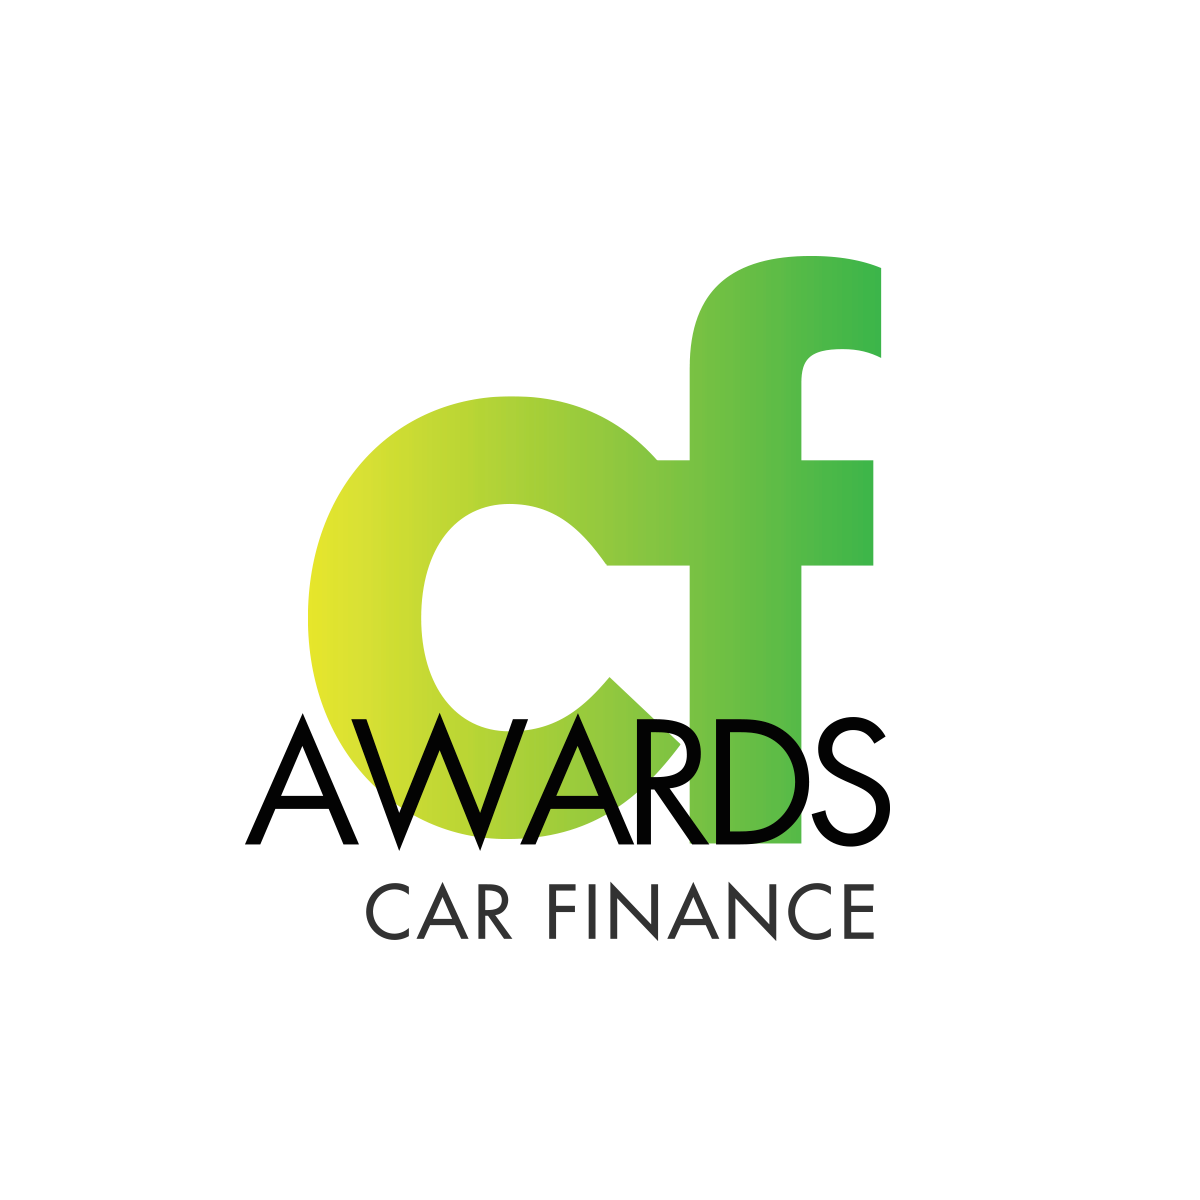 Car Finance Awards 2017